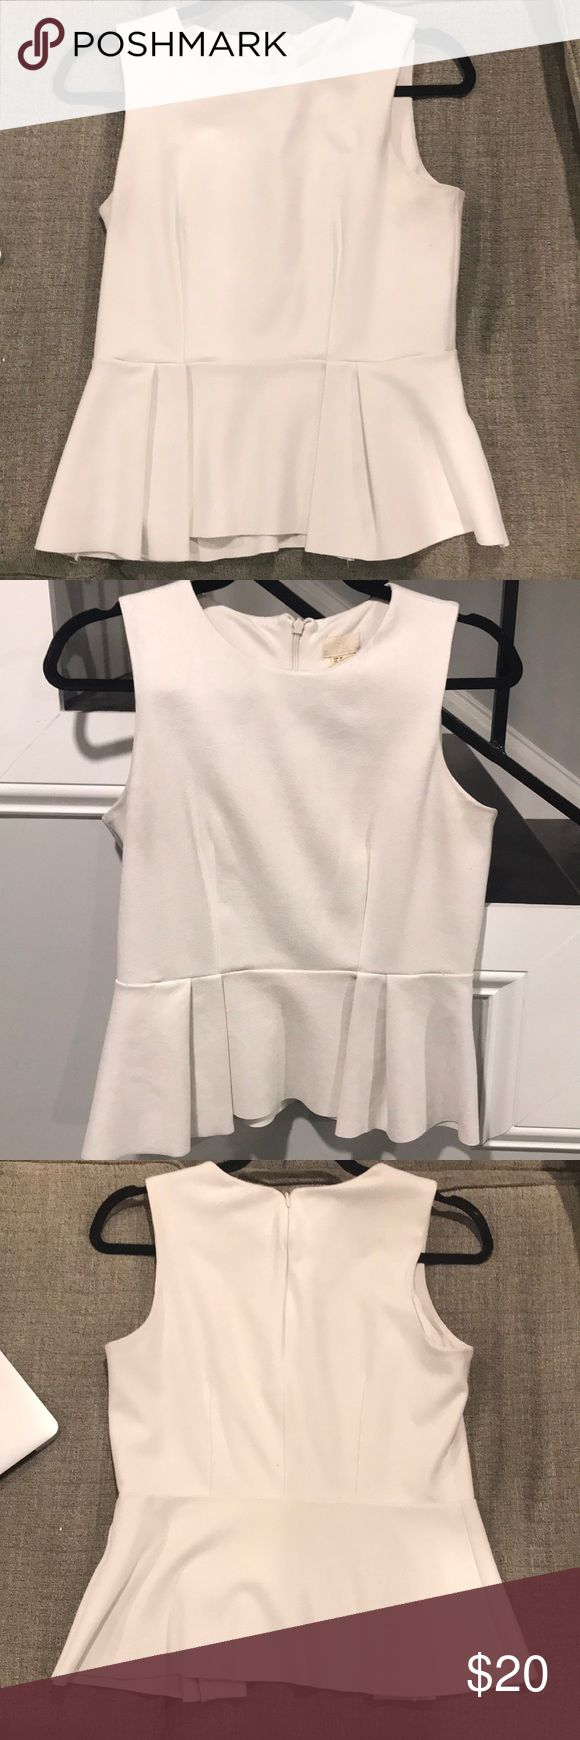 H&M white peplum top with pleated hem H&M white peplum too with pleated hem. Sleeveless top with a crew neck. Material is polyester, elastane and spandex. This top is a great staple piece. very comfortable and flattering on.   Top is a size 8, but it runs small. Fits closer to a size 6. I'm 5'5 and the top ends right at my hip bones. Is tighter around the bust and then flows out on the bottom because of the pleated hem. Has a back zipper. In great condition. Just sent it to the dry cleaners…